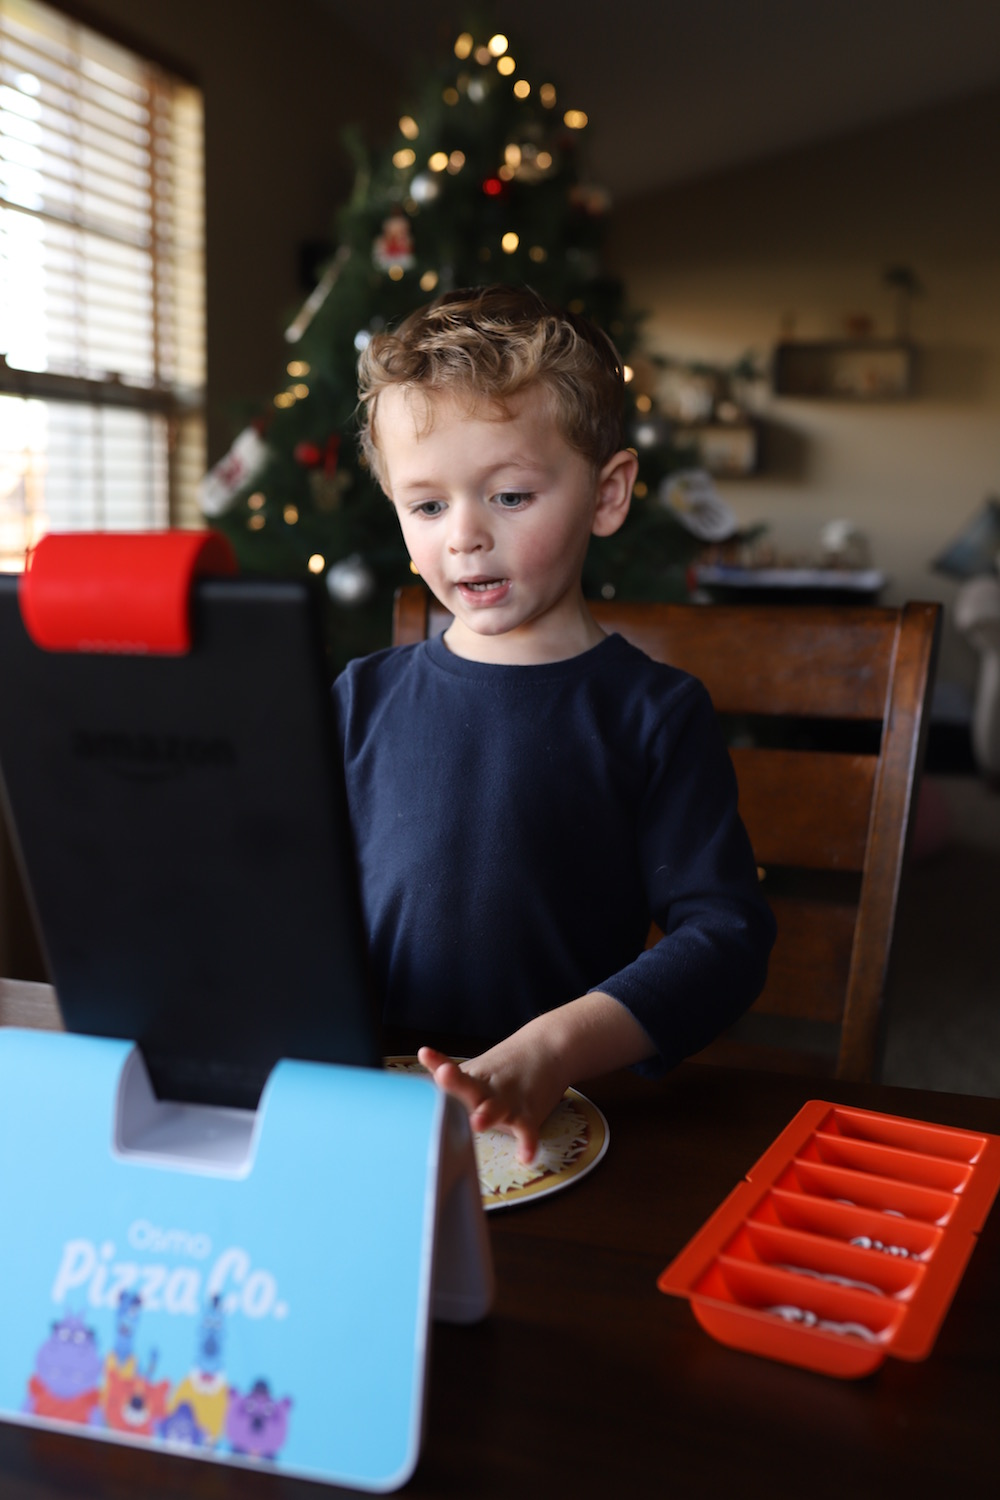 Give the gift of Osmo this holiday season - Take screen time to the next level with hands-on learning and play with Osmo!